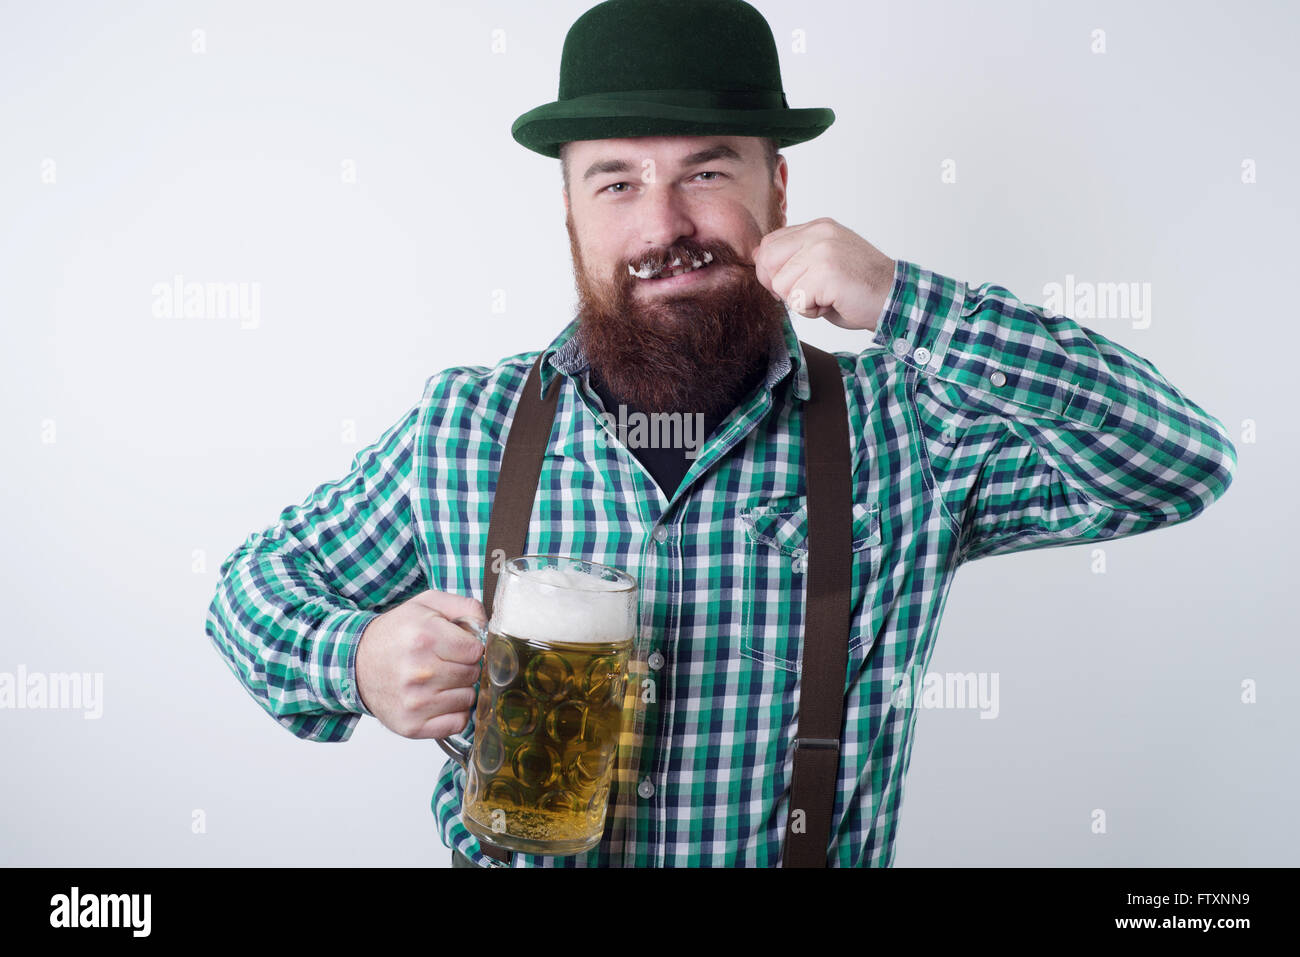 Man holding a beer glass and twirling his moustache - Stock Image